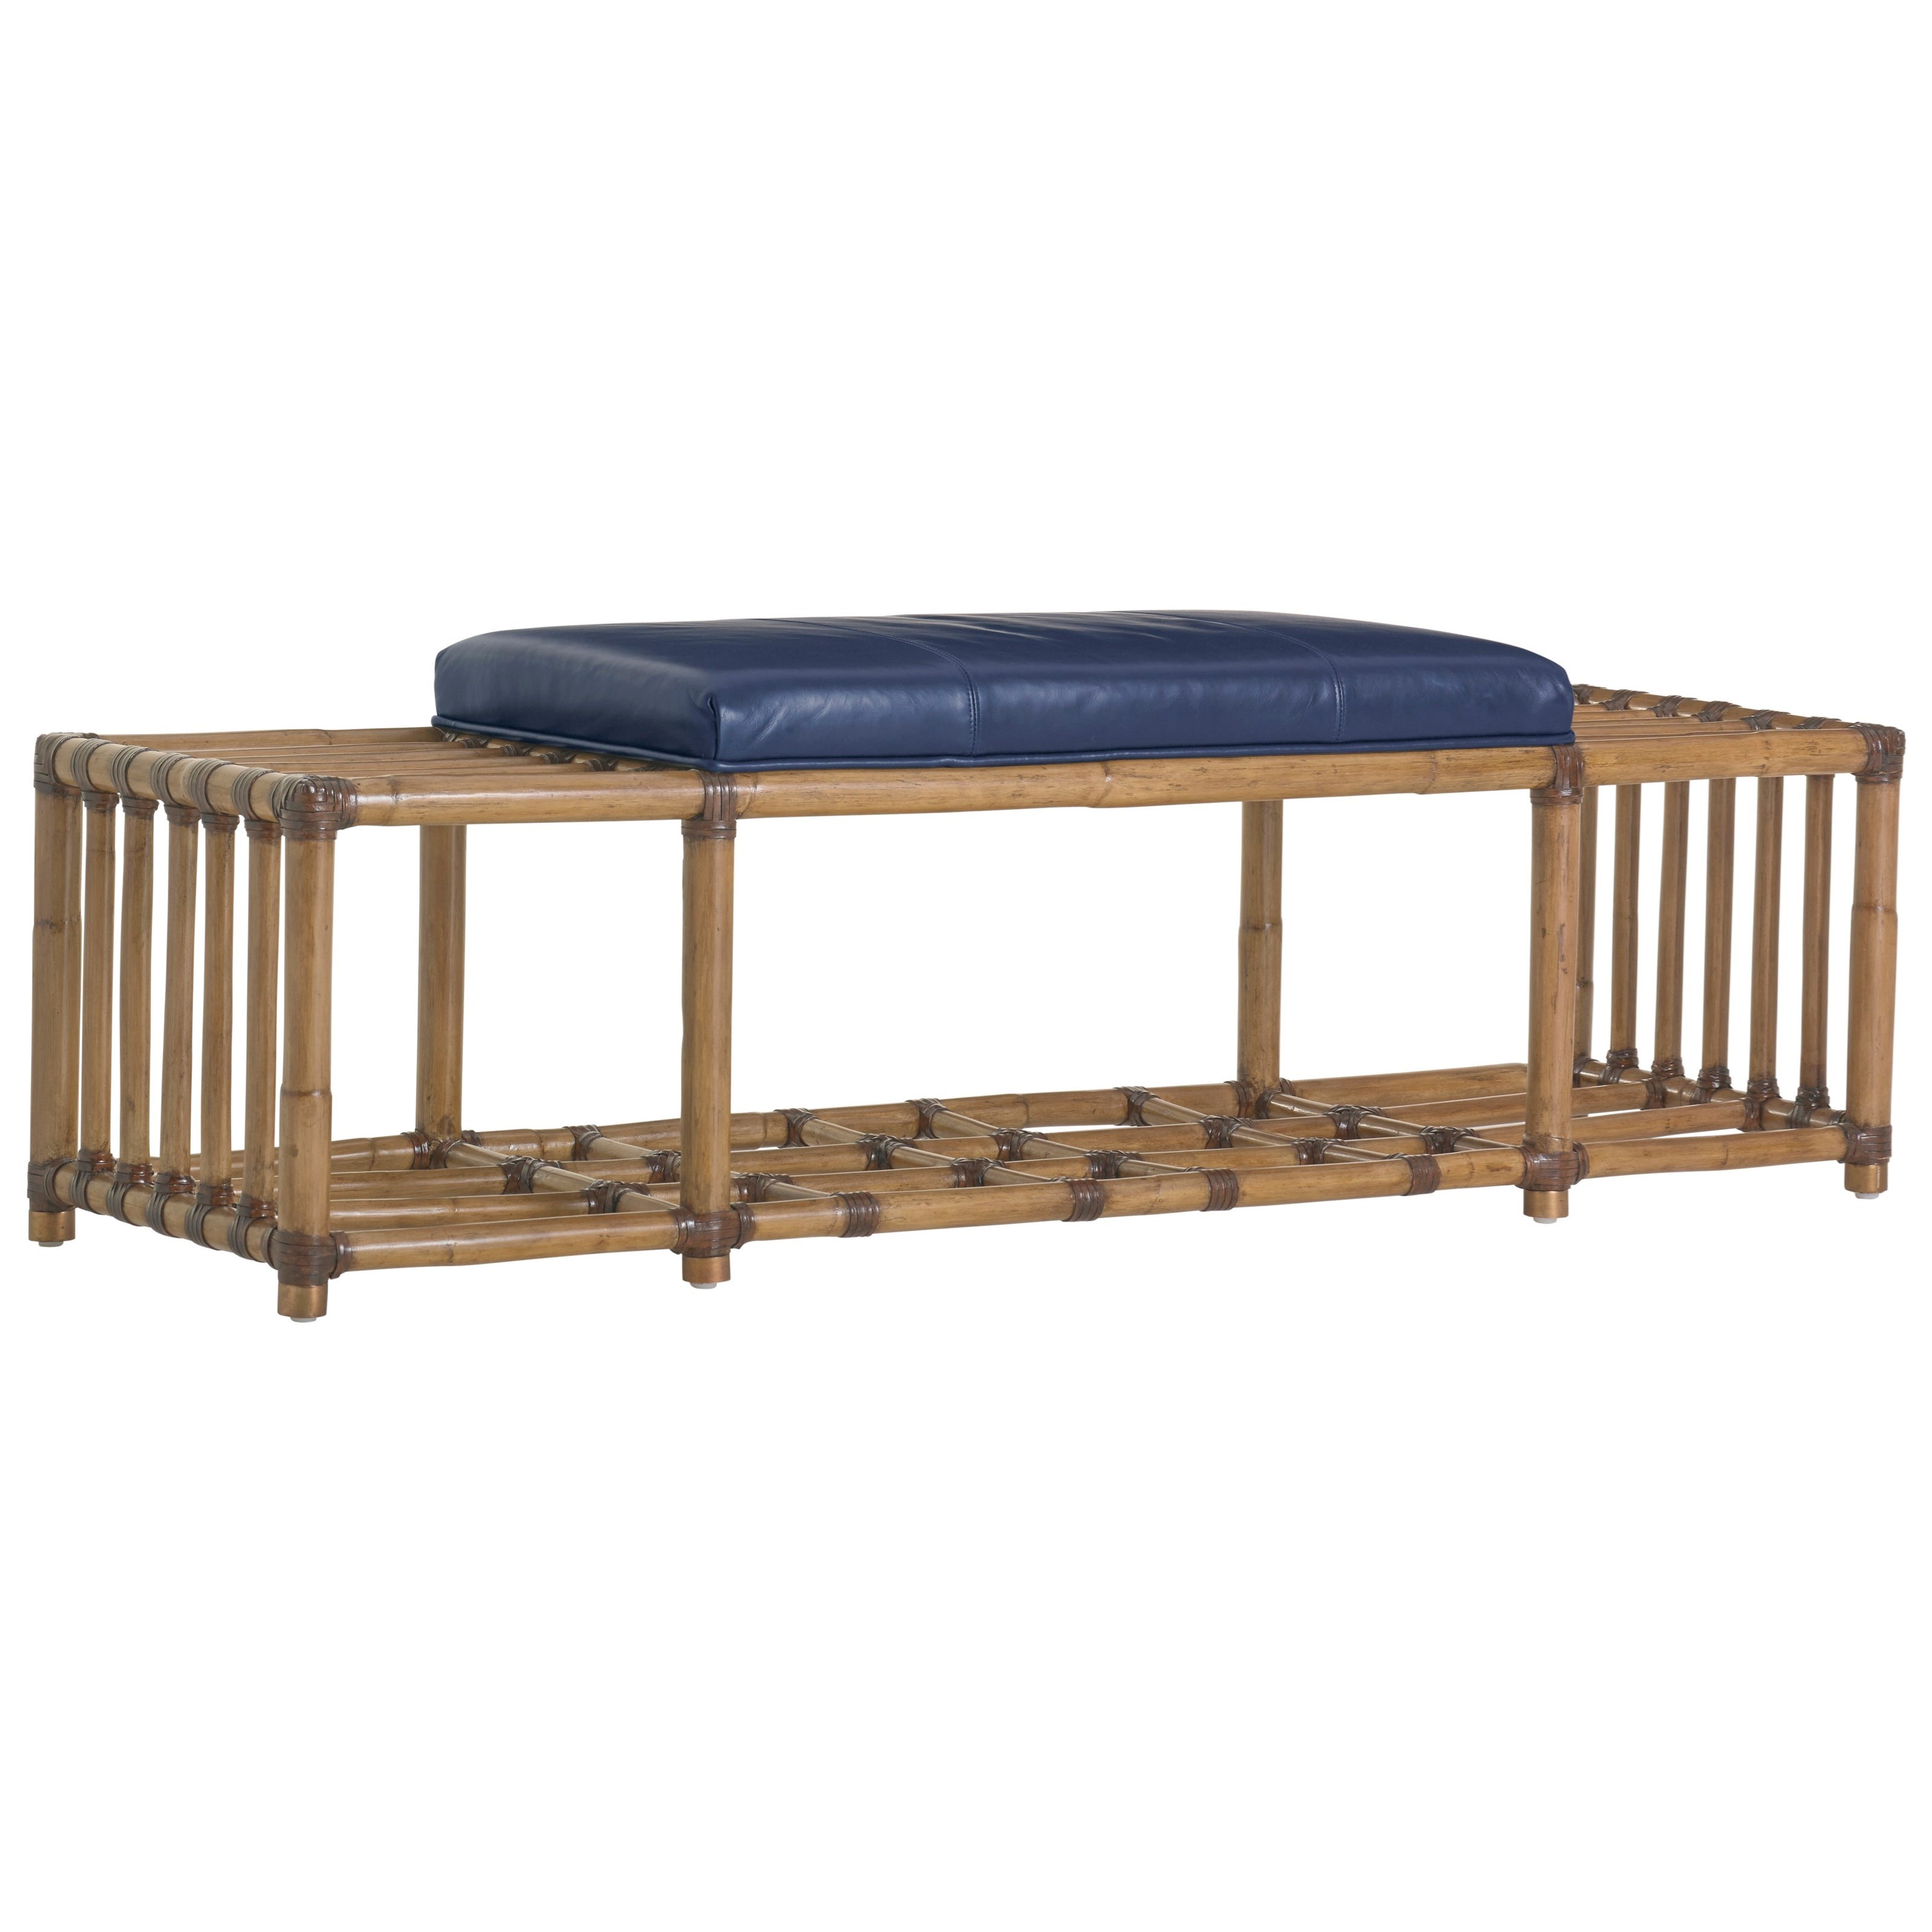 Tommy Bahama Home Twin Palms Seafarer Bench - Item Number: LL1914-25-9626-31